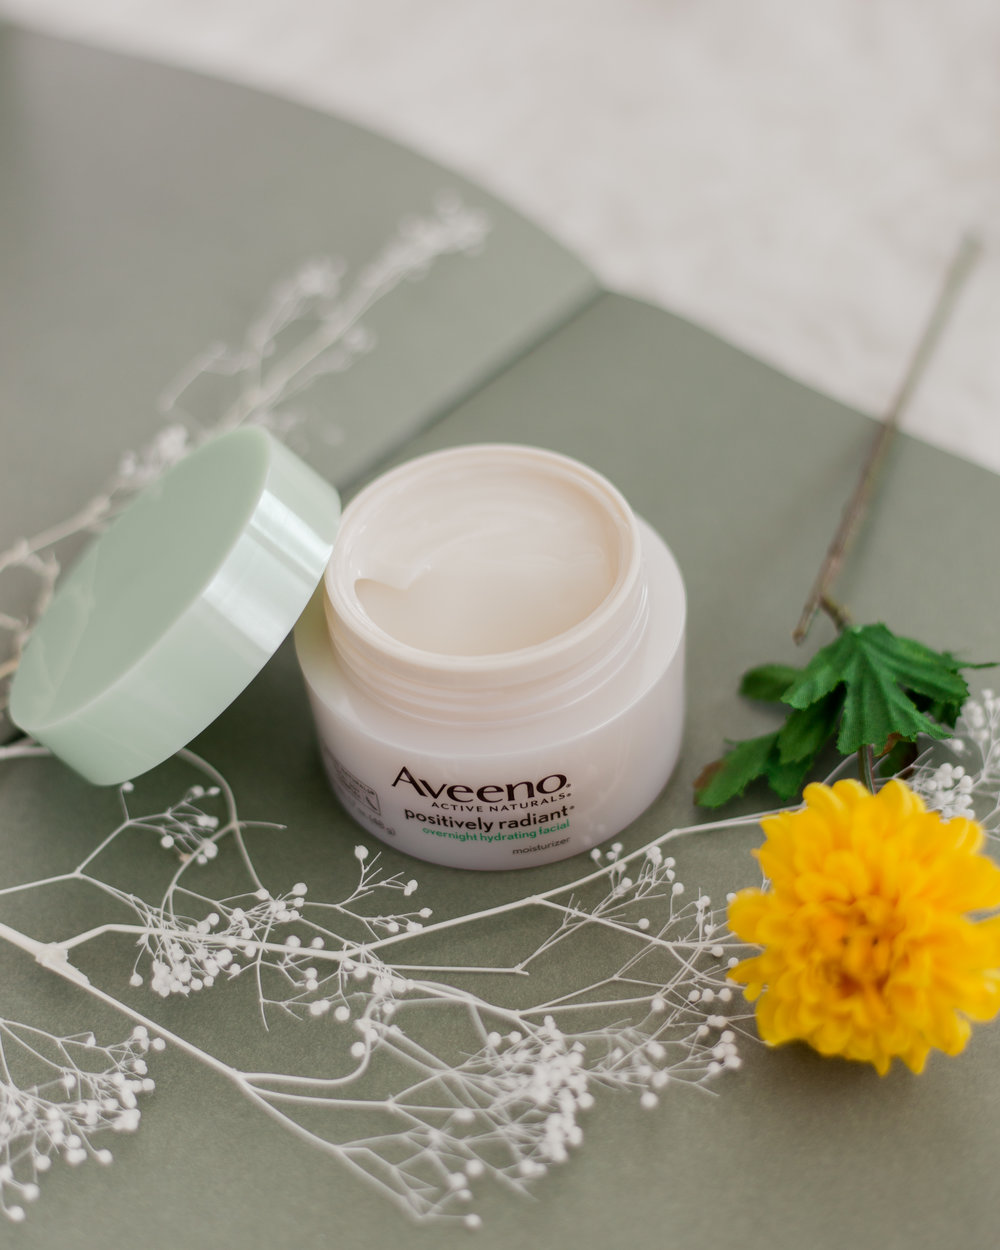 Aveeno® Active Naturals Positively Radiant Overnight Hydrating Facial Moisturizer